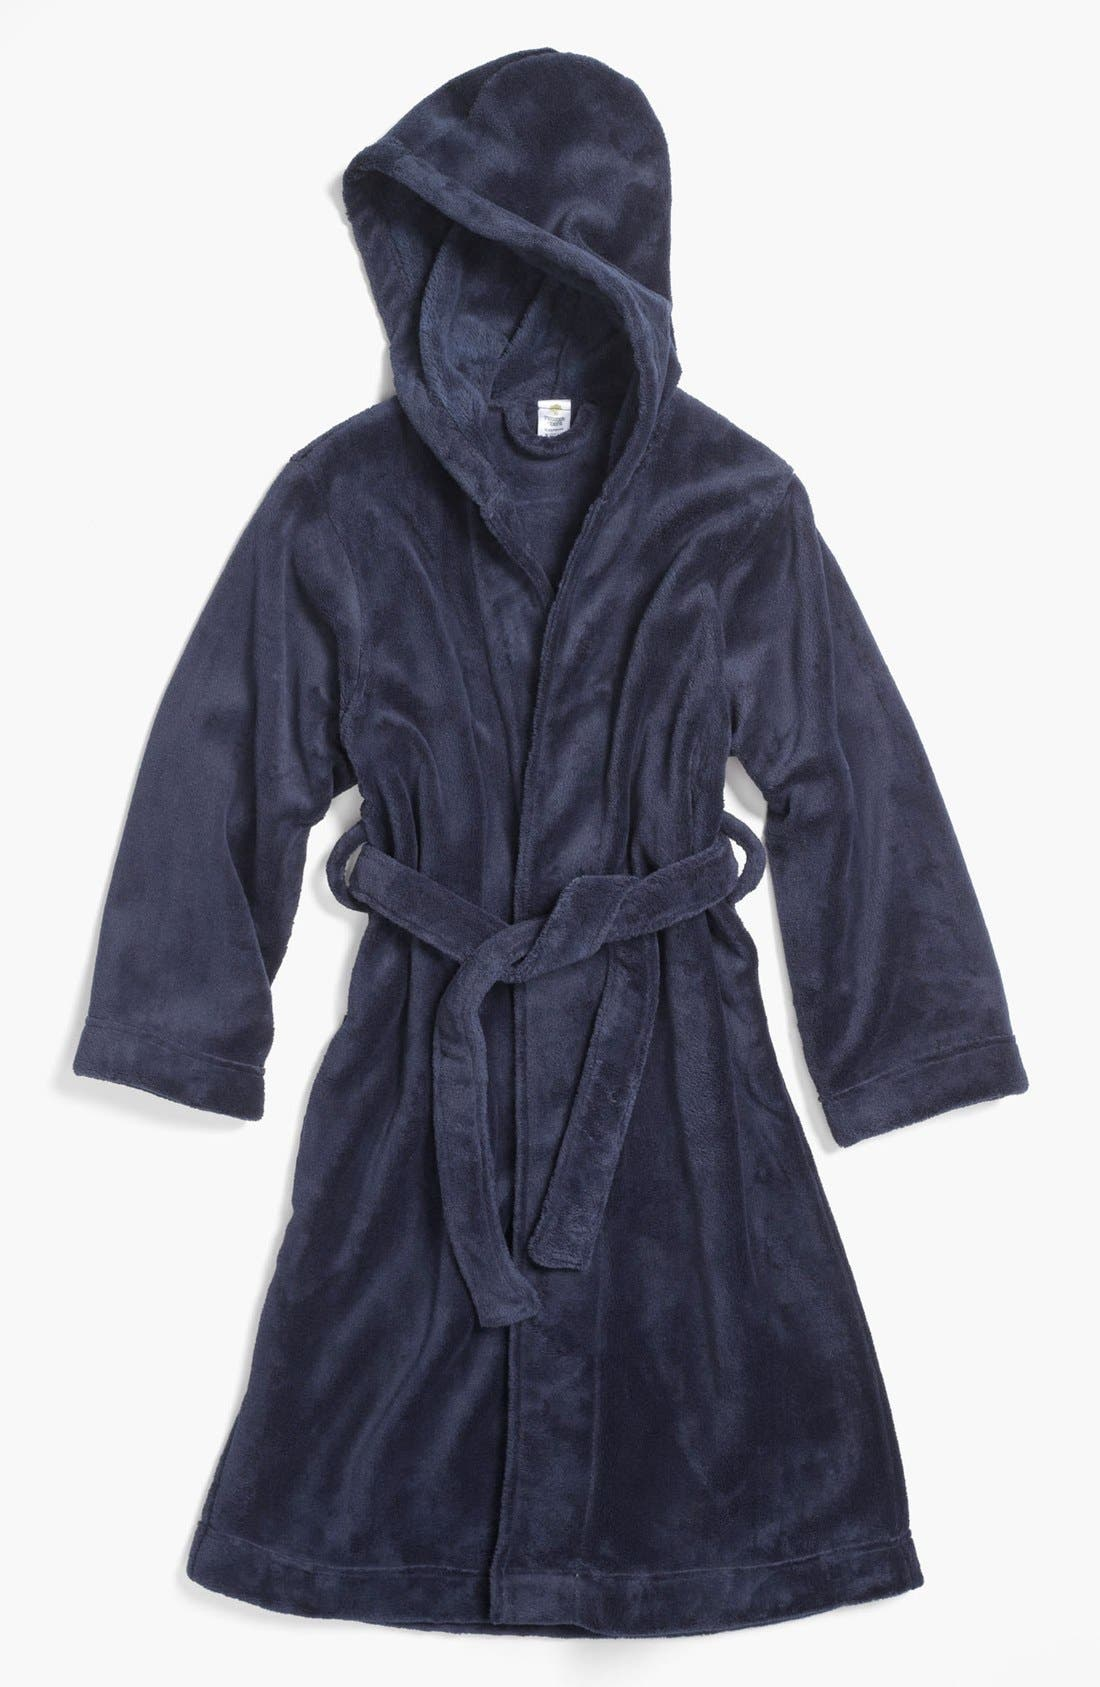 Alternate Image 1 Selected - Tucker + Tate Hooded Robe (Little Boys & Big Boys)